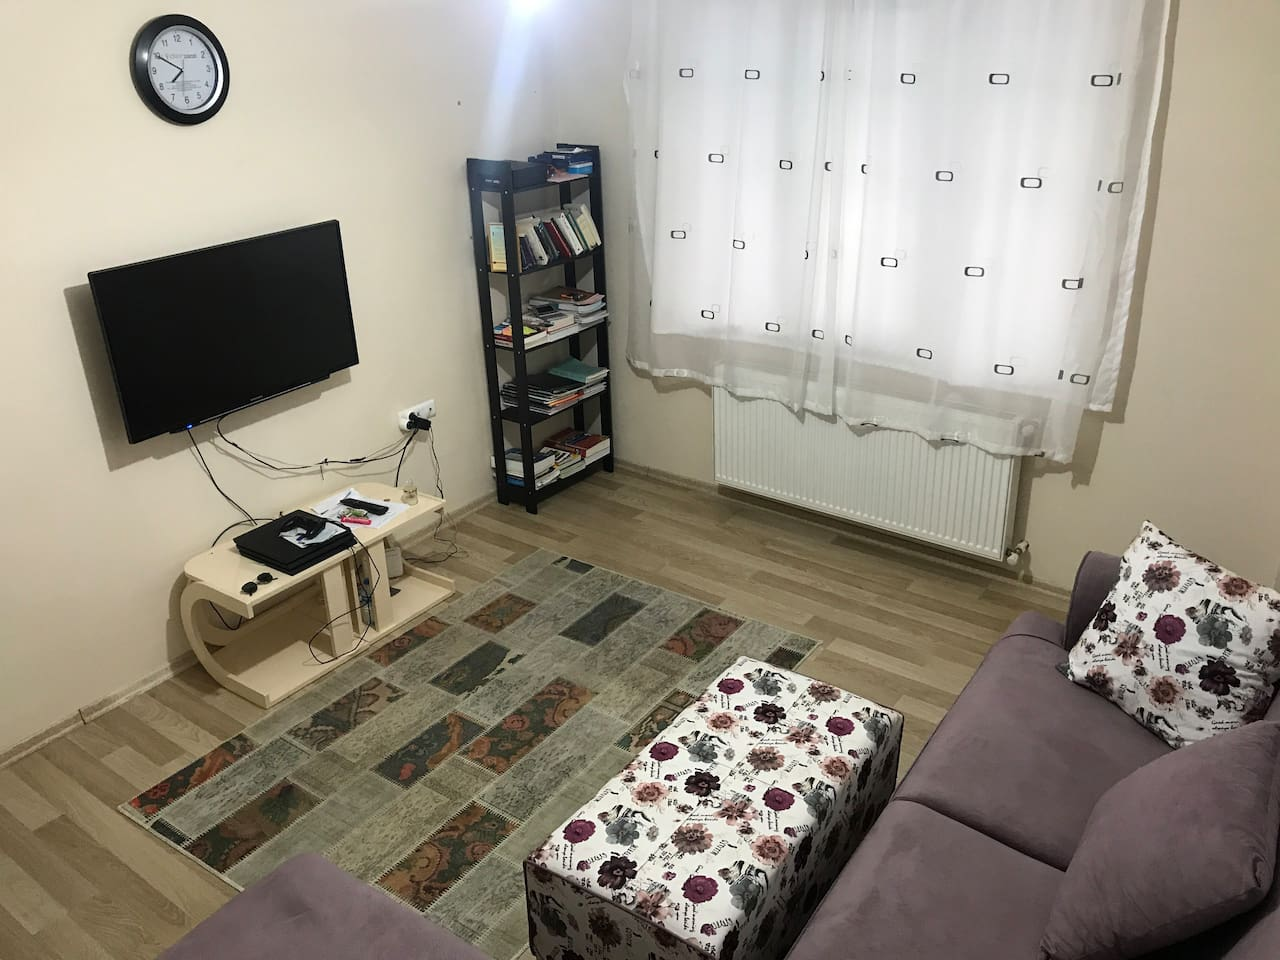 This is my living room  where my guests will rest and sleep